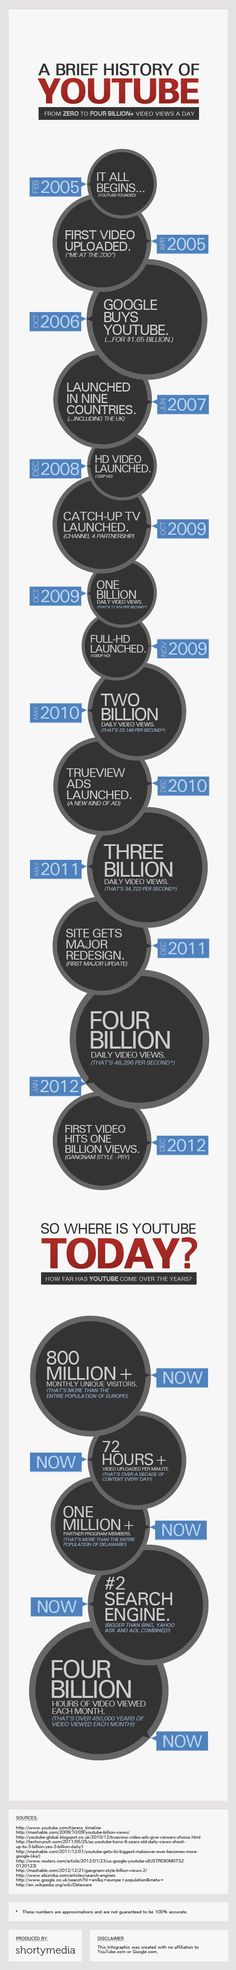 YouTubes 8th Birthday: From Zero to 4+ Billion Views [Infographic]